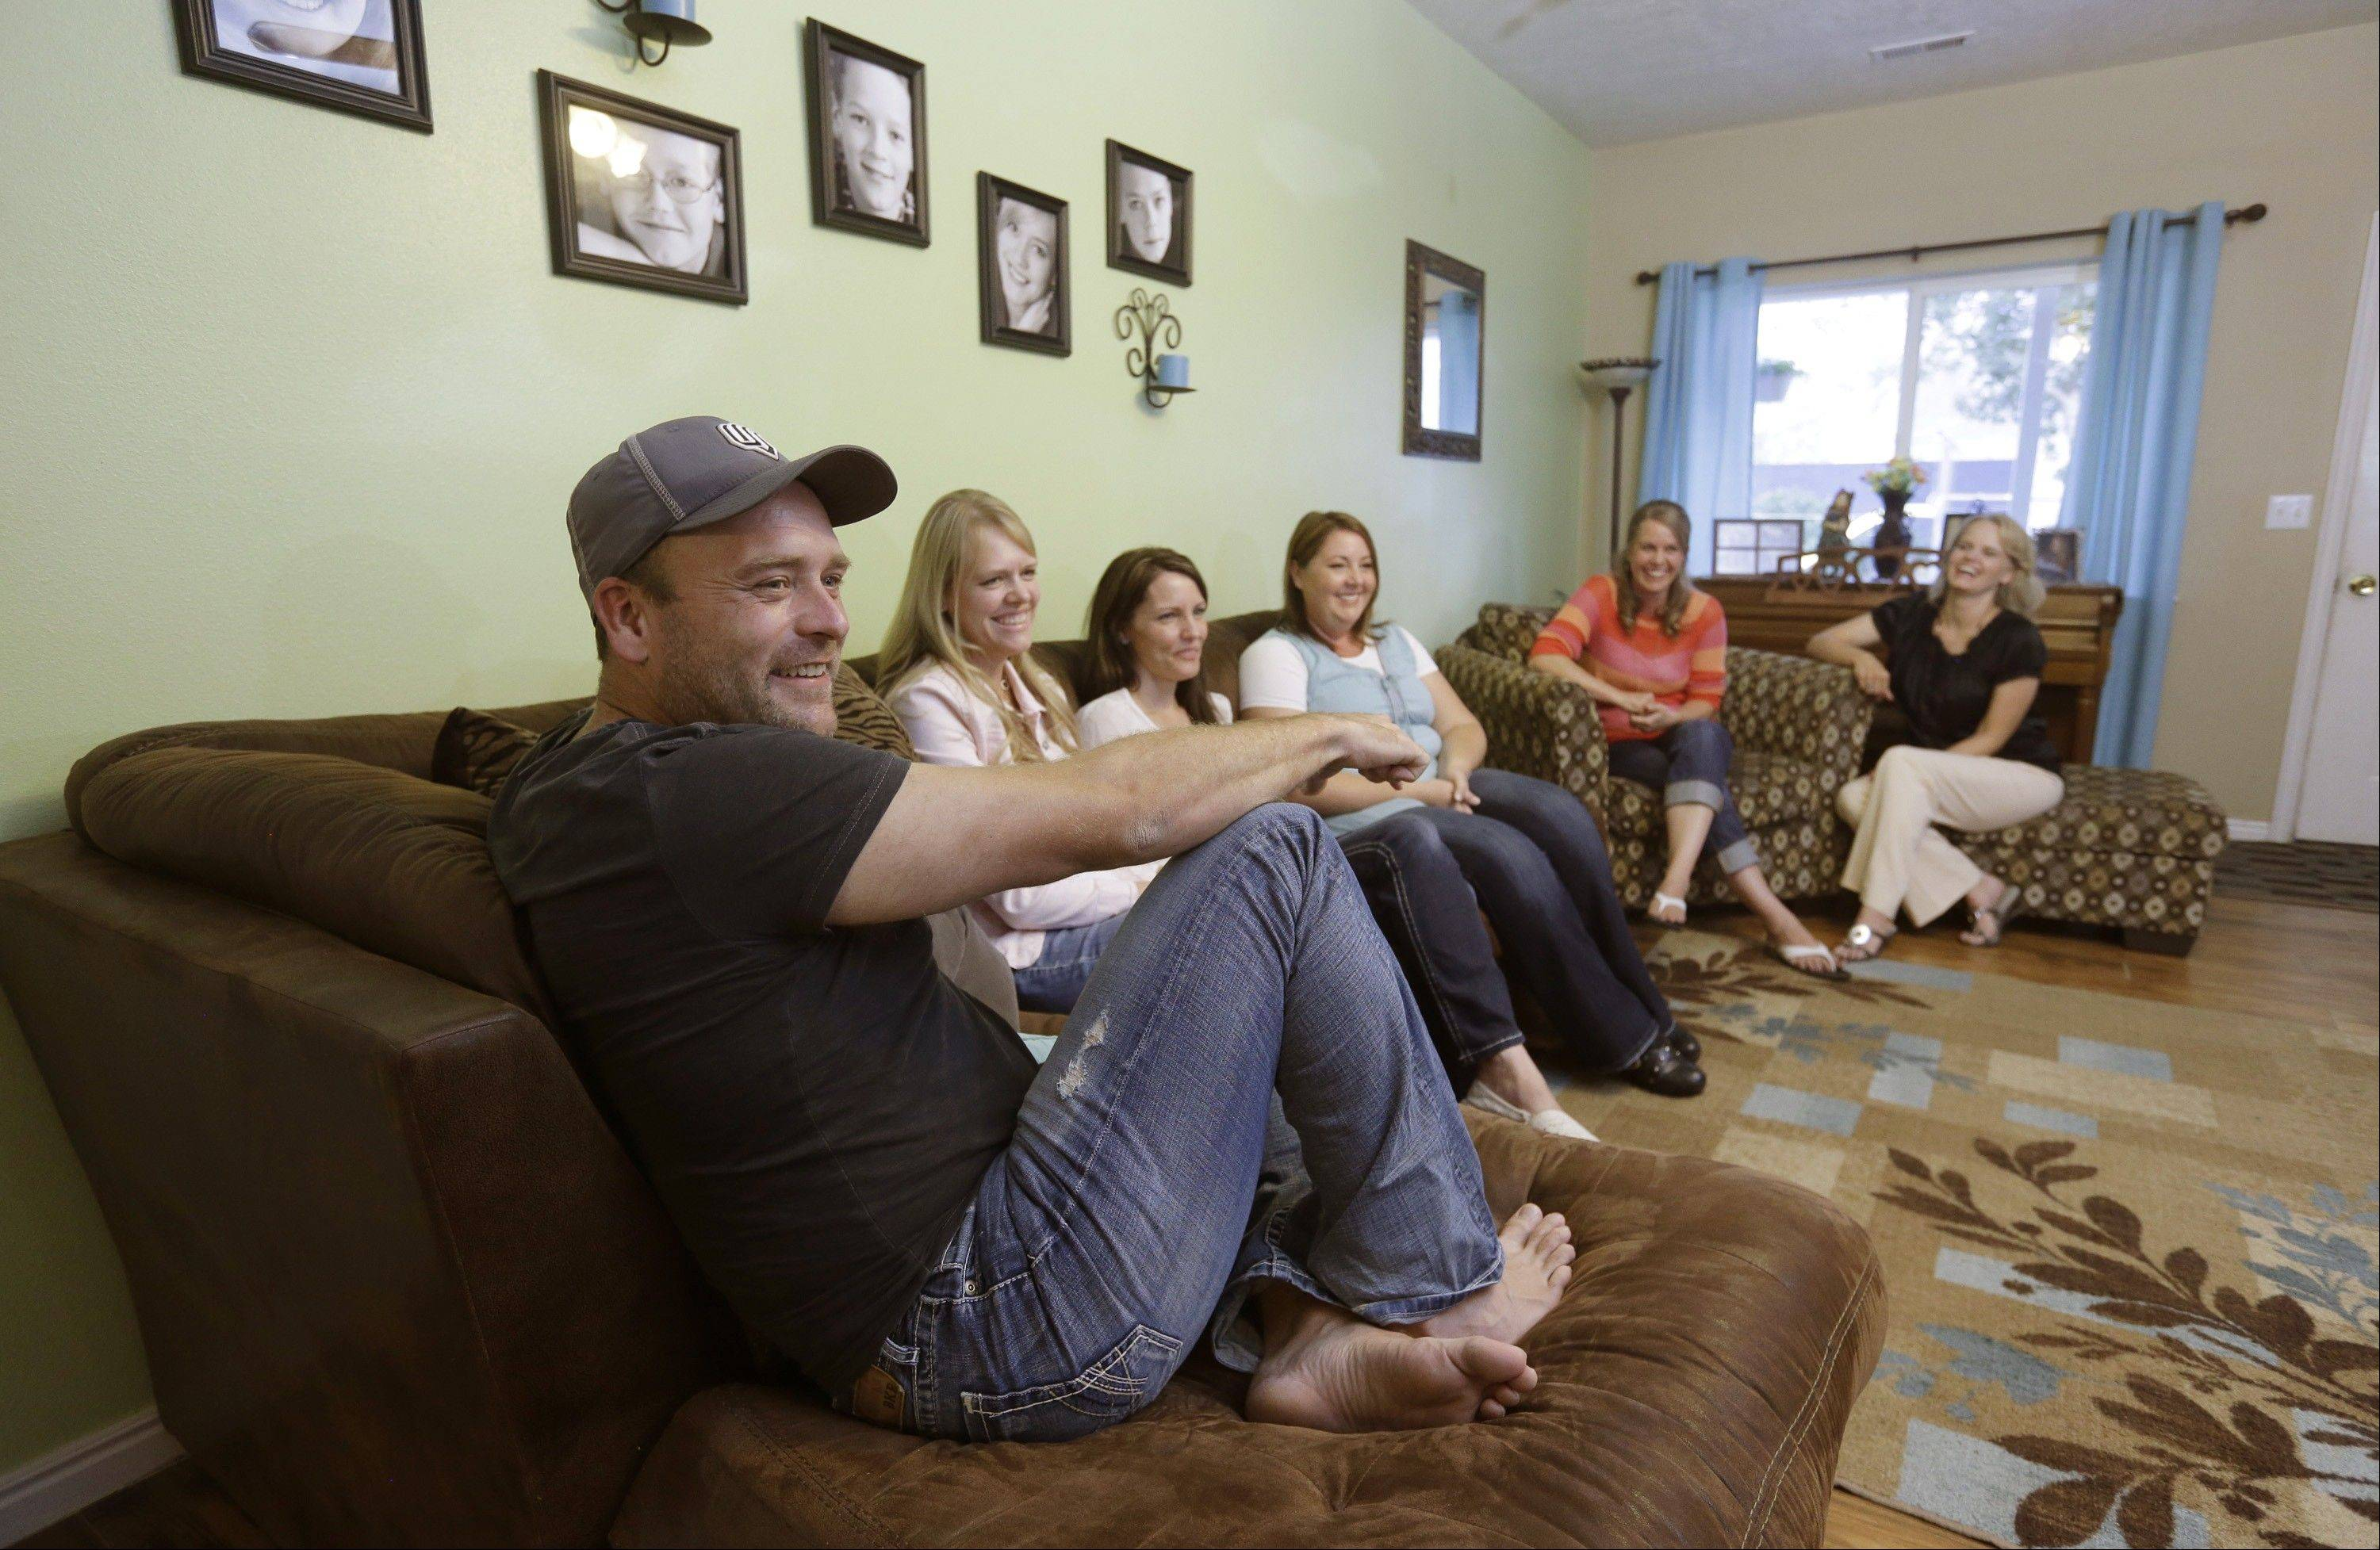 Brady Williams talks while his wives, from left, Robyn, Paulie, Rosemary, Nonie and Rhonda, look on at their home in a polygamous community outside Salt Lake City.